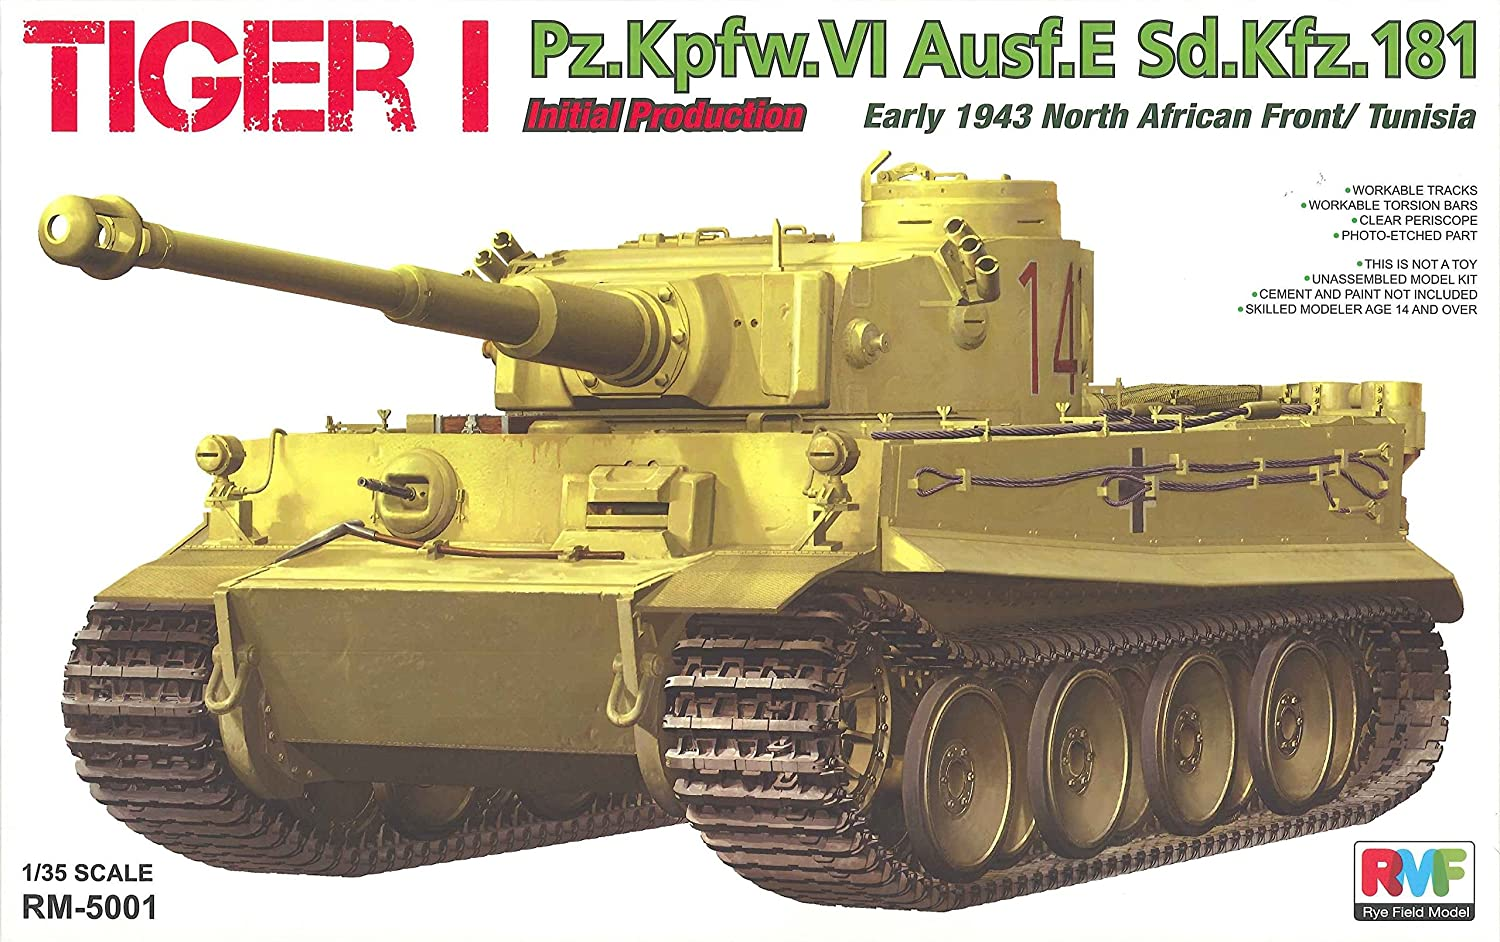 Rye Field Model RM-5001 - Modellbausatz Tiger I Initial Production Early 1943